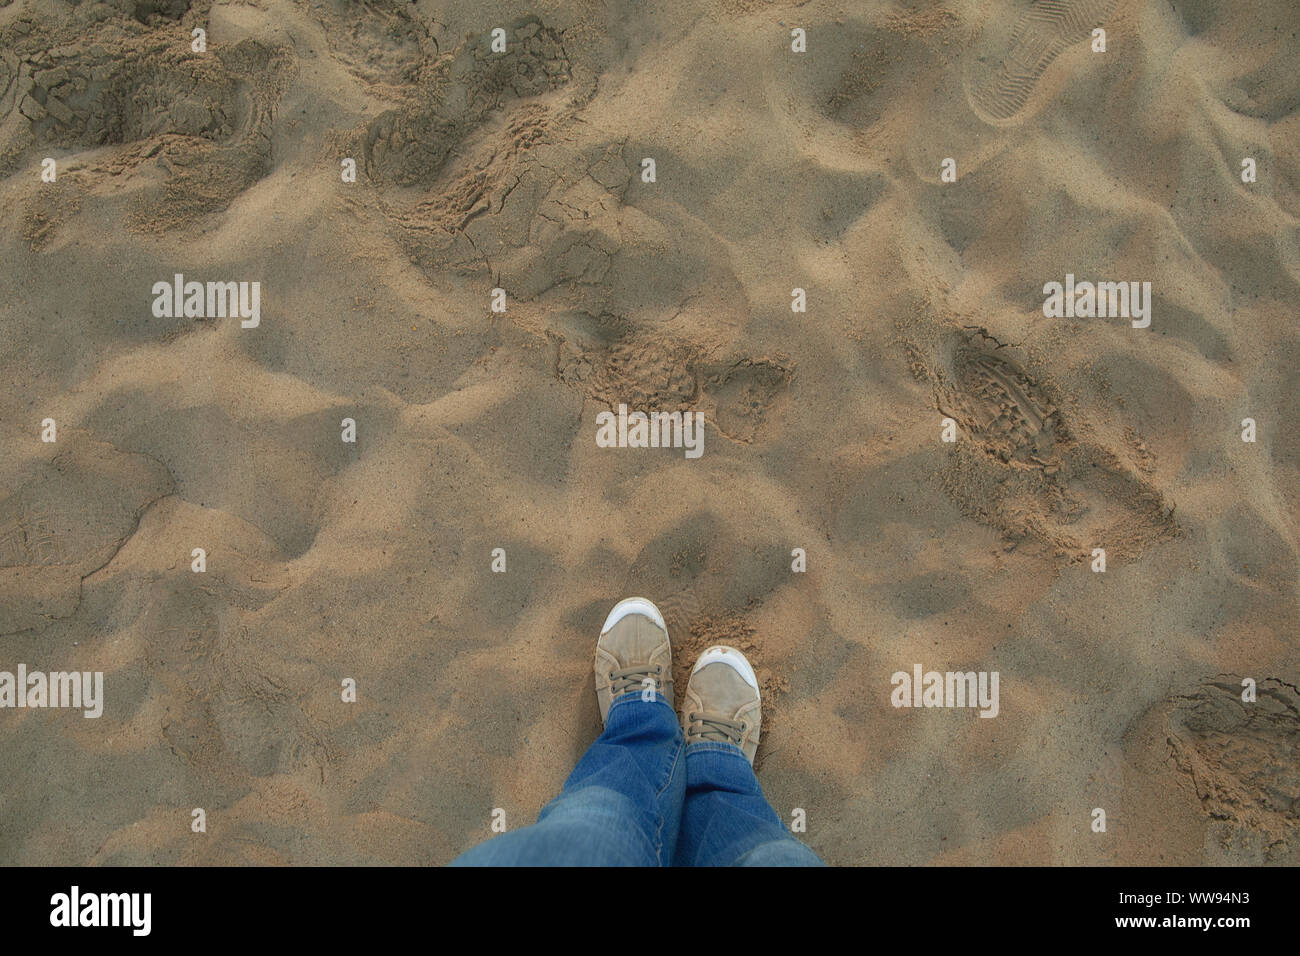 A person in jeans and sneakers stands on sunny sandy beach. Personal perspective used. Stock Photo